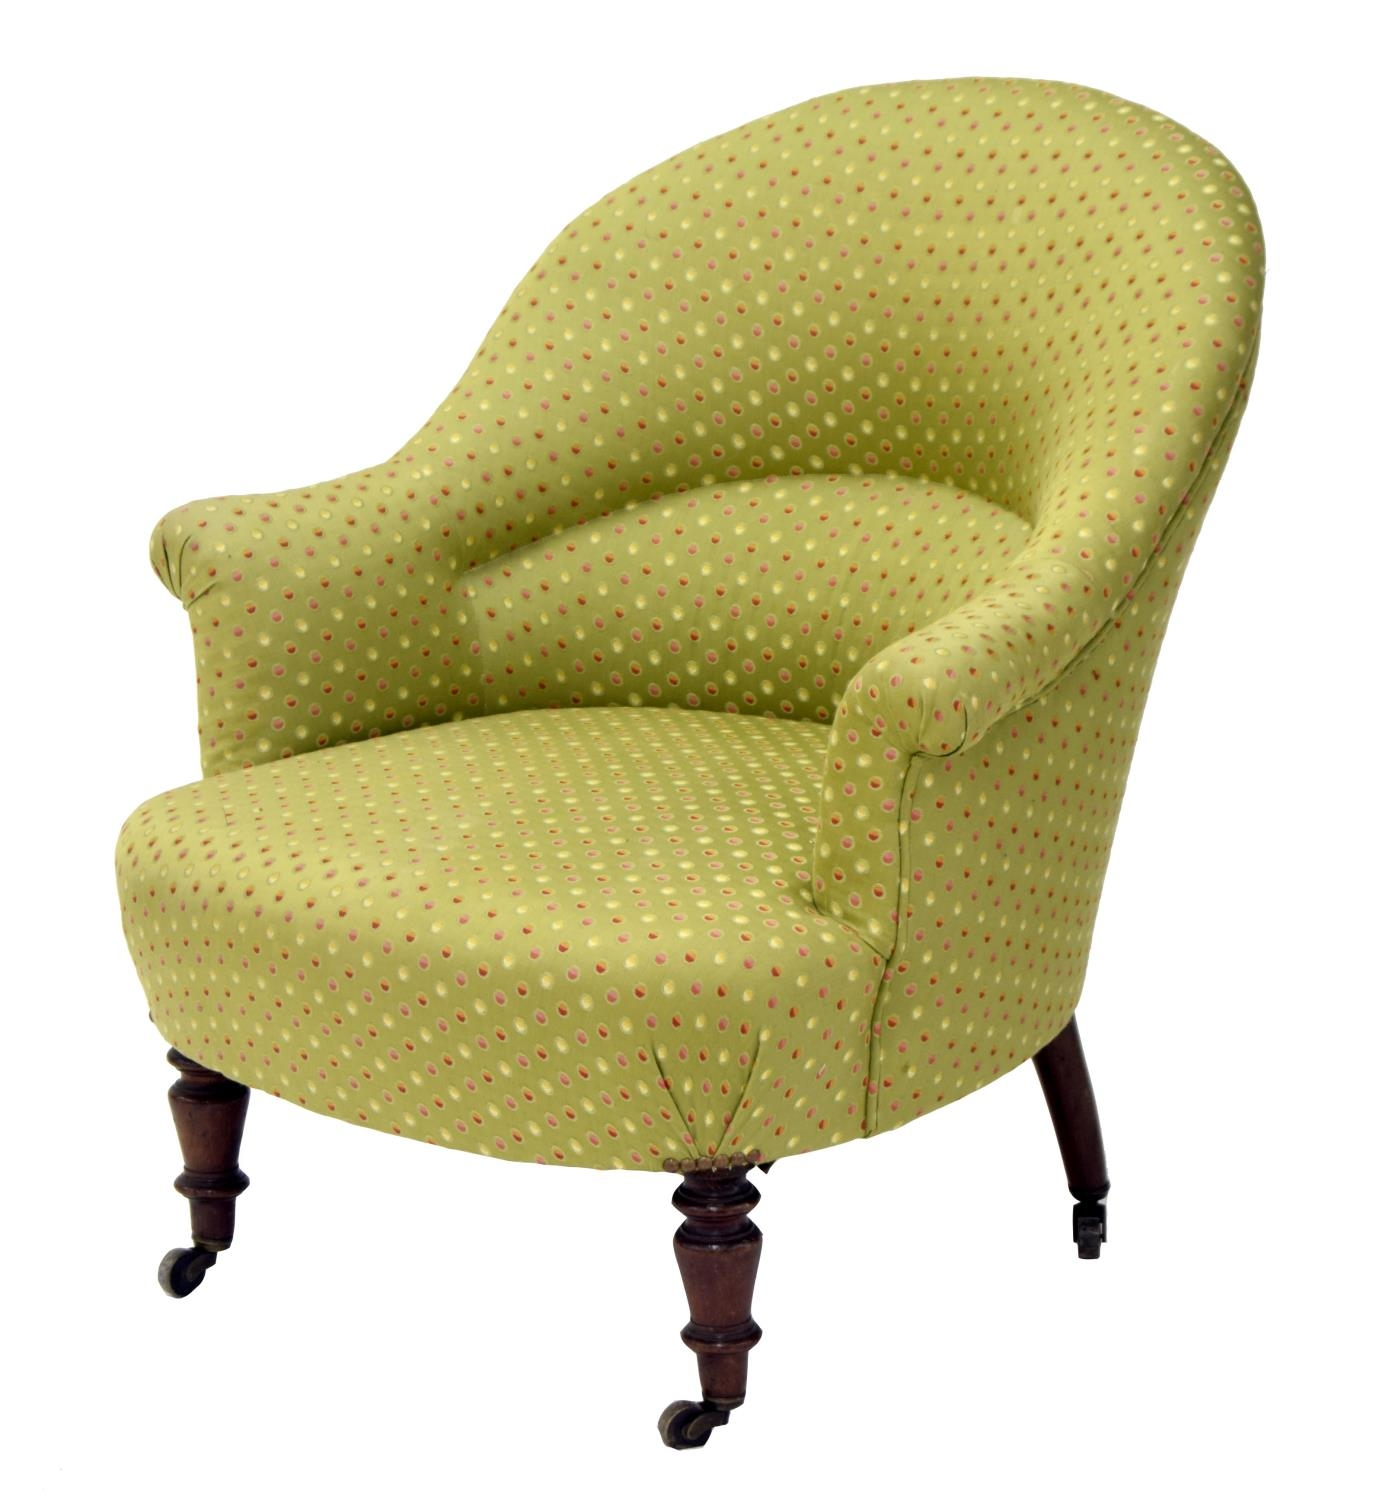 Victorian green polka dot upholstered bedroom armchair, the bowed seat upon short turned feet,